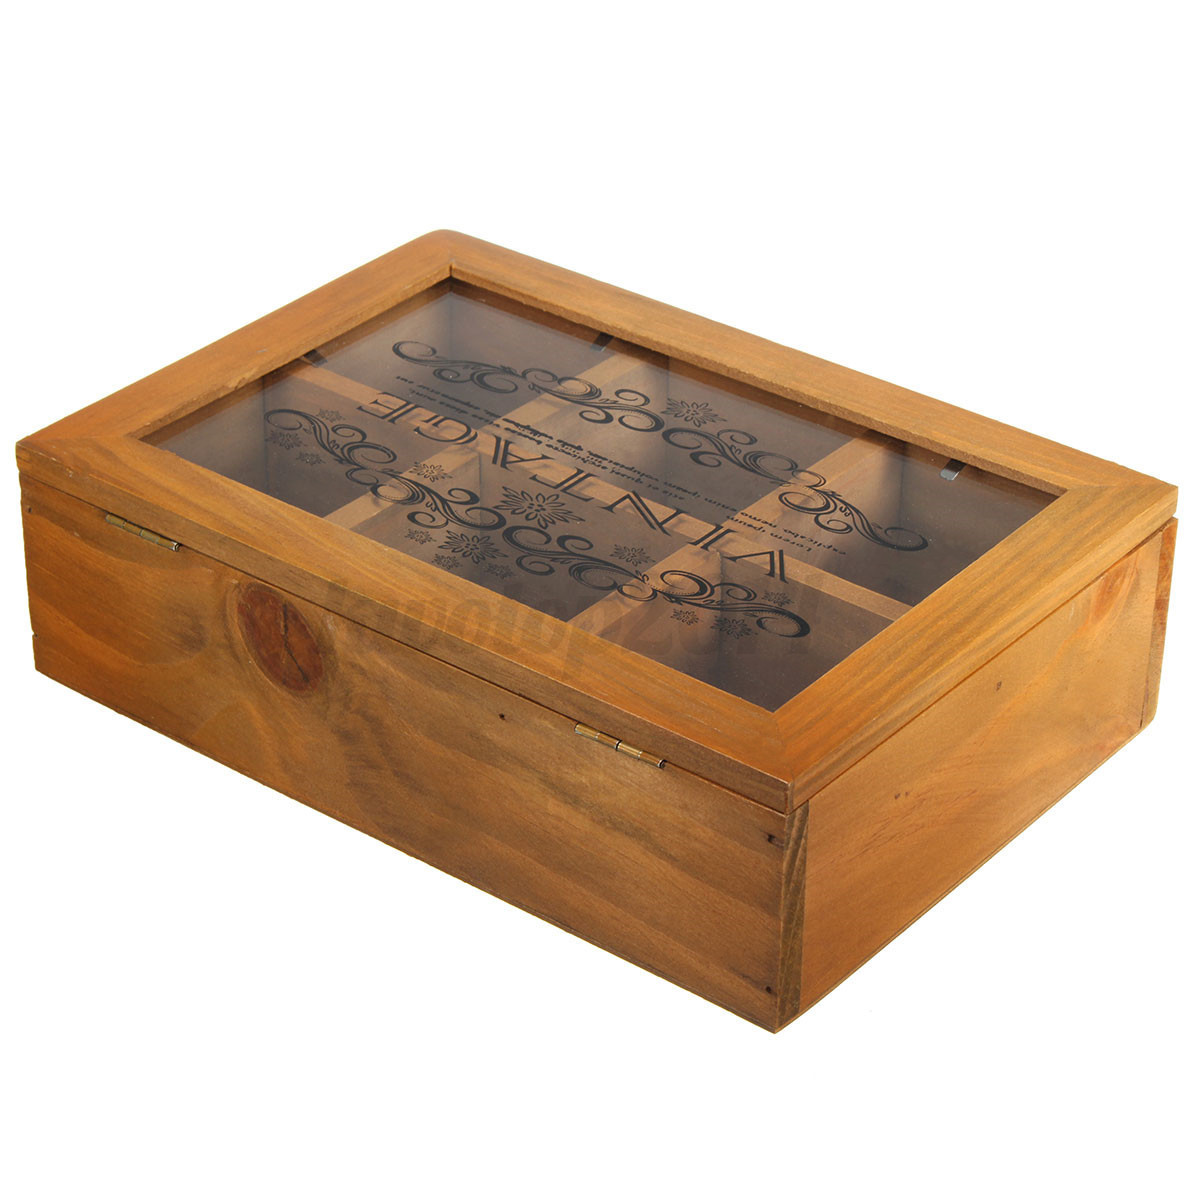 vintage zakka wooden storage box organizer container glass lid 6 lattices new ebay. Black Bedroom Furniture Sets. Home Design Ideas